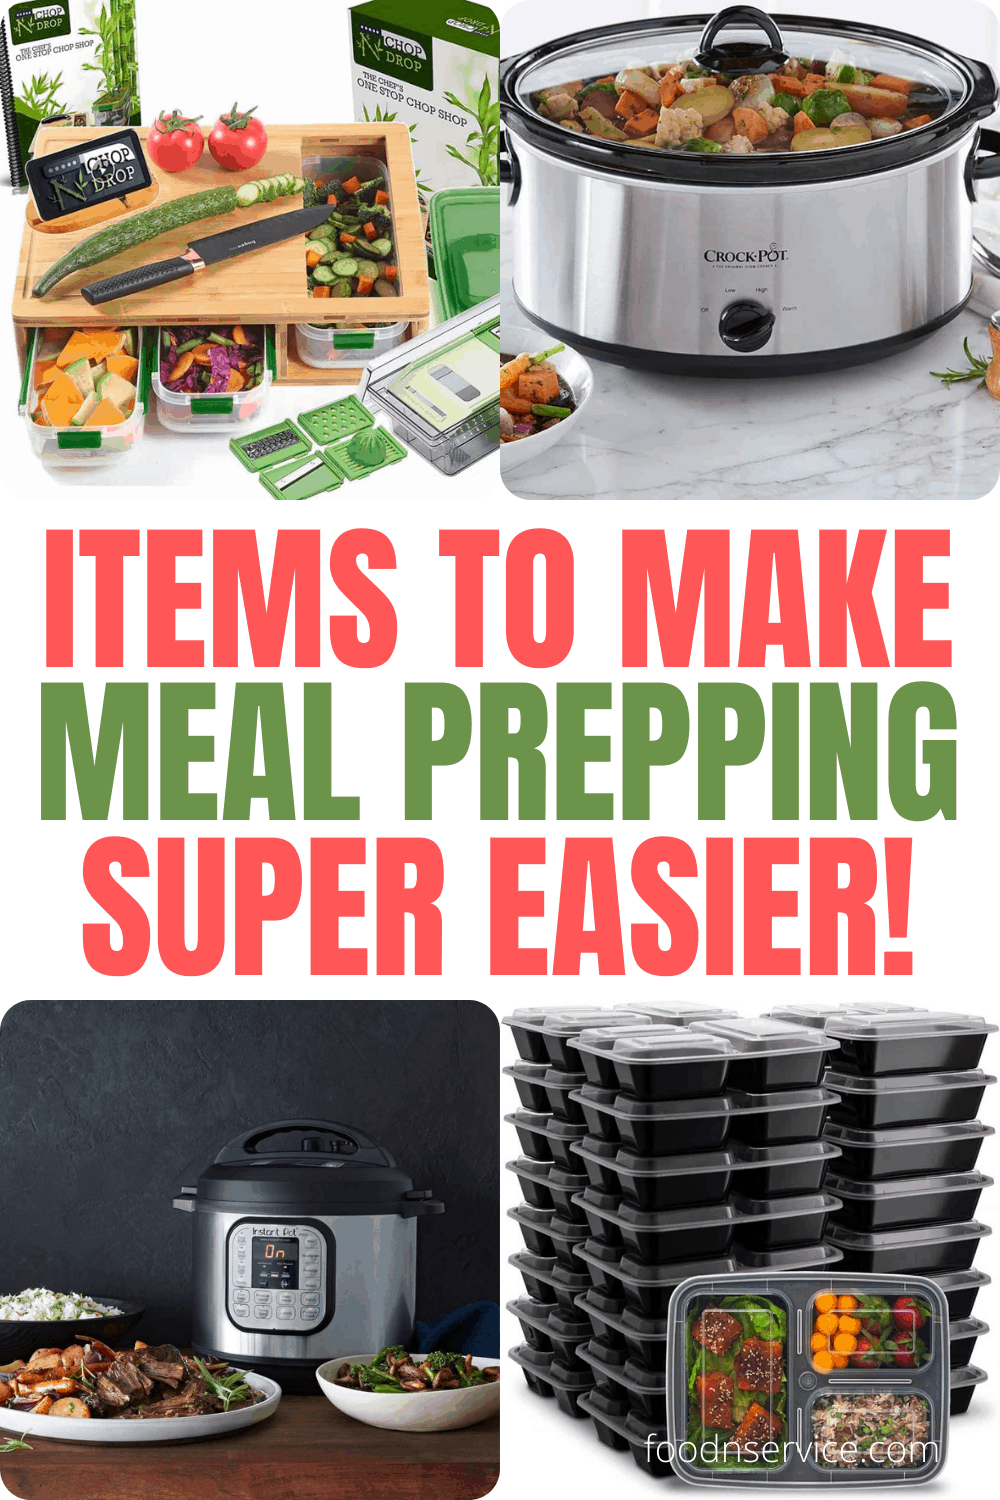 15 Products to Make Meal Prepping Easier